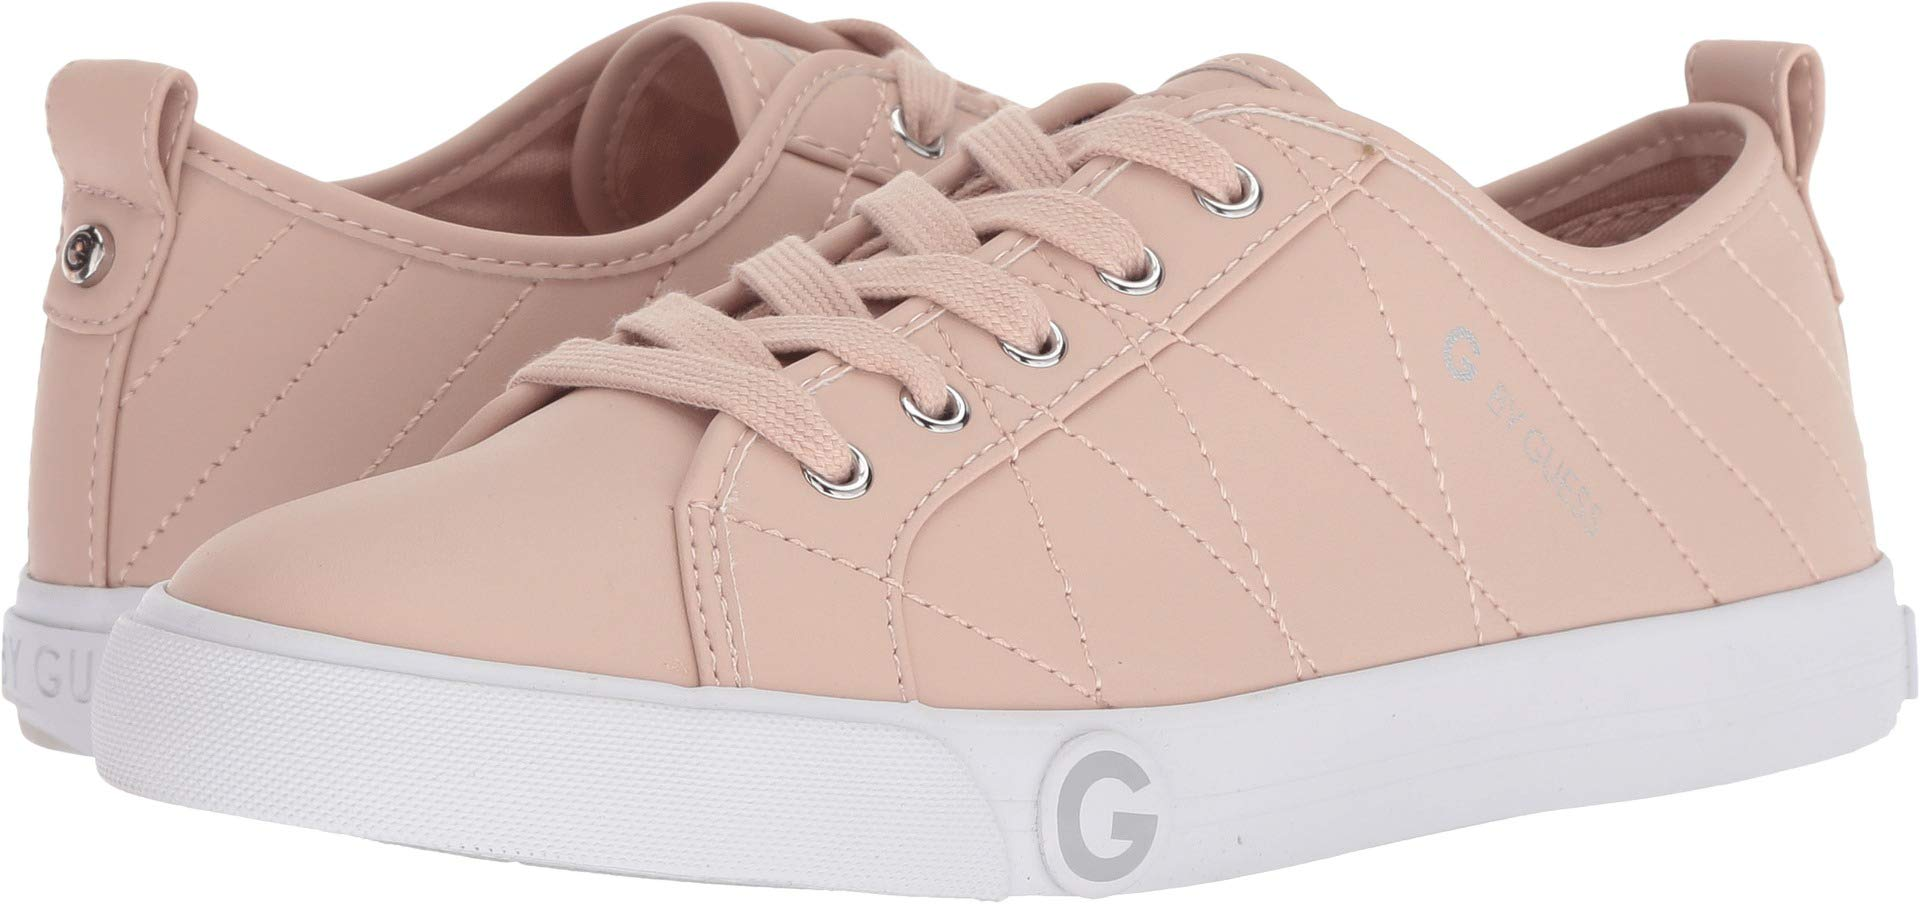 G by GUESS Women's Orfin Low-Top Sneakers